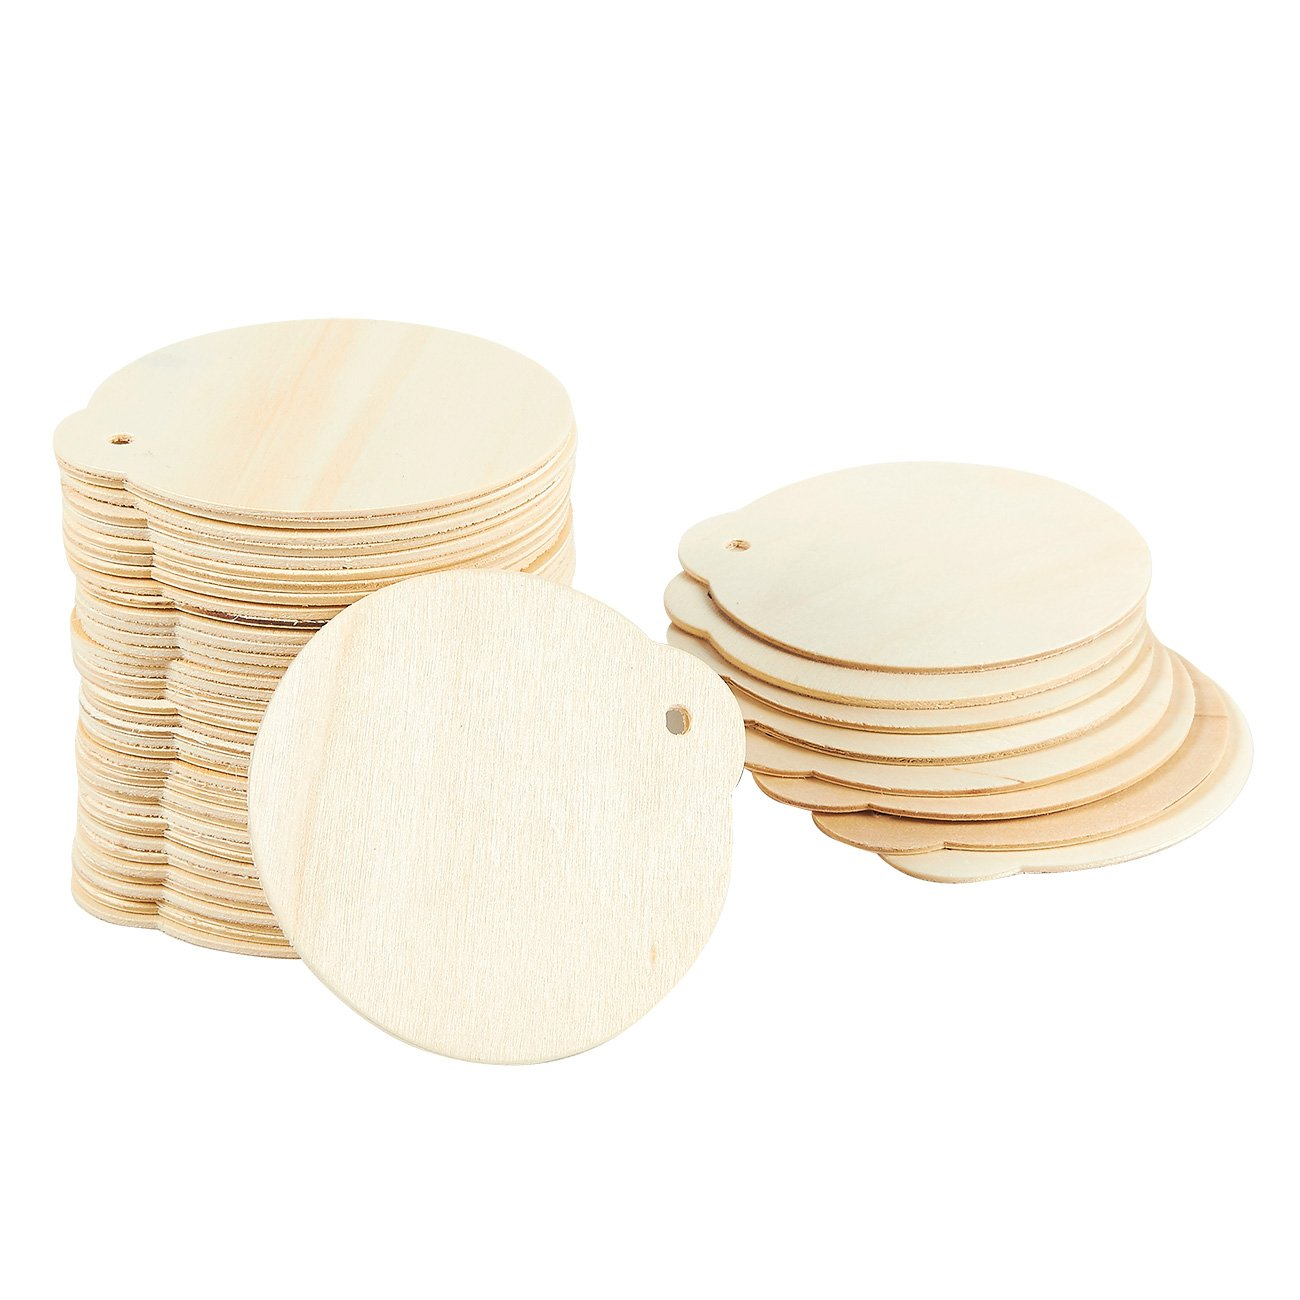 for DIY Craft 48-Pack Round Wood Discs Centerpiece 2.7 x 2.5 x 0.1 Inches Holiday Party Decoration Unfinished Wood Ornaments Wood Bauble Christmas Tree Pendants Ornaments Wood Circles